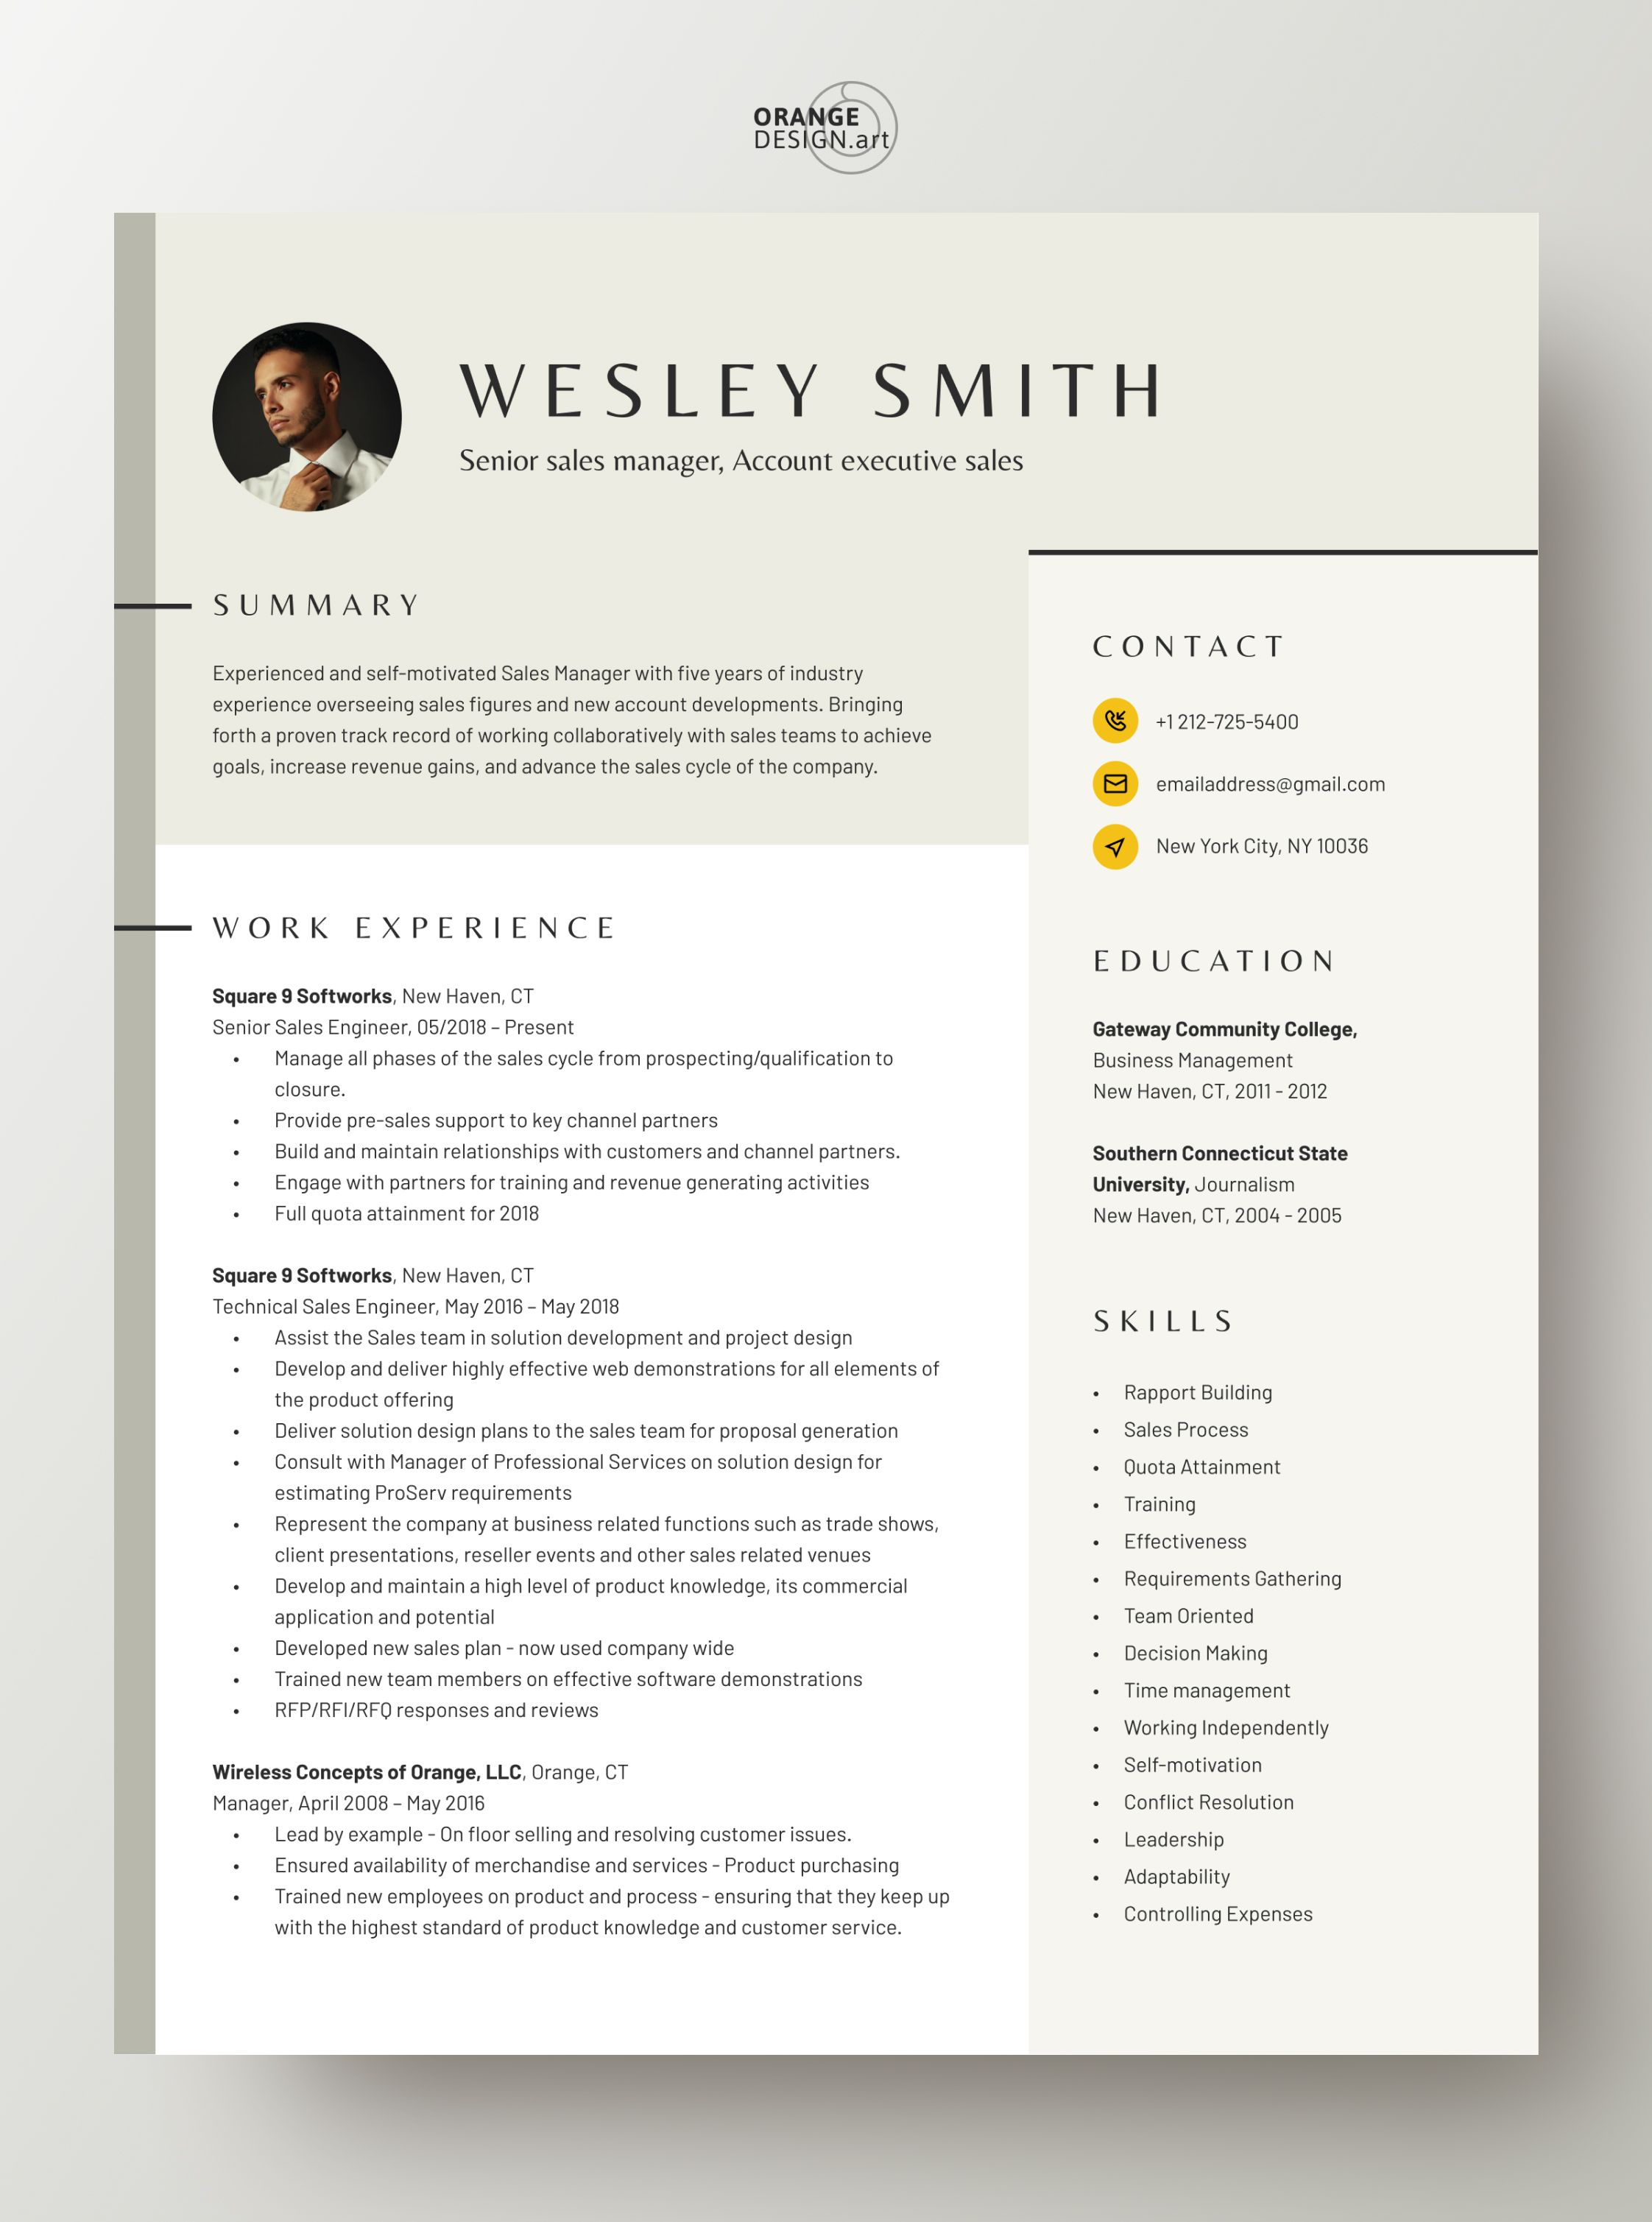 Resume Template Word 2020 Professional Cv Template With Photo Modern Cv Design 2 Page Creative Resume Template Curriculum Vitae Smith In 2020 Resume Template Word Resume Template Cv Template Professional